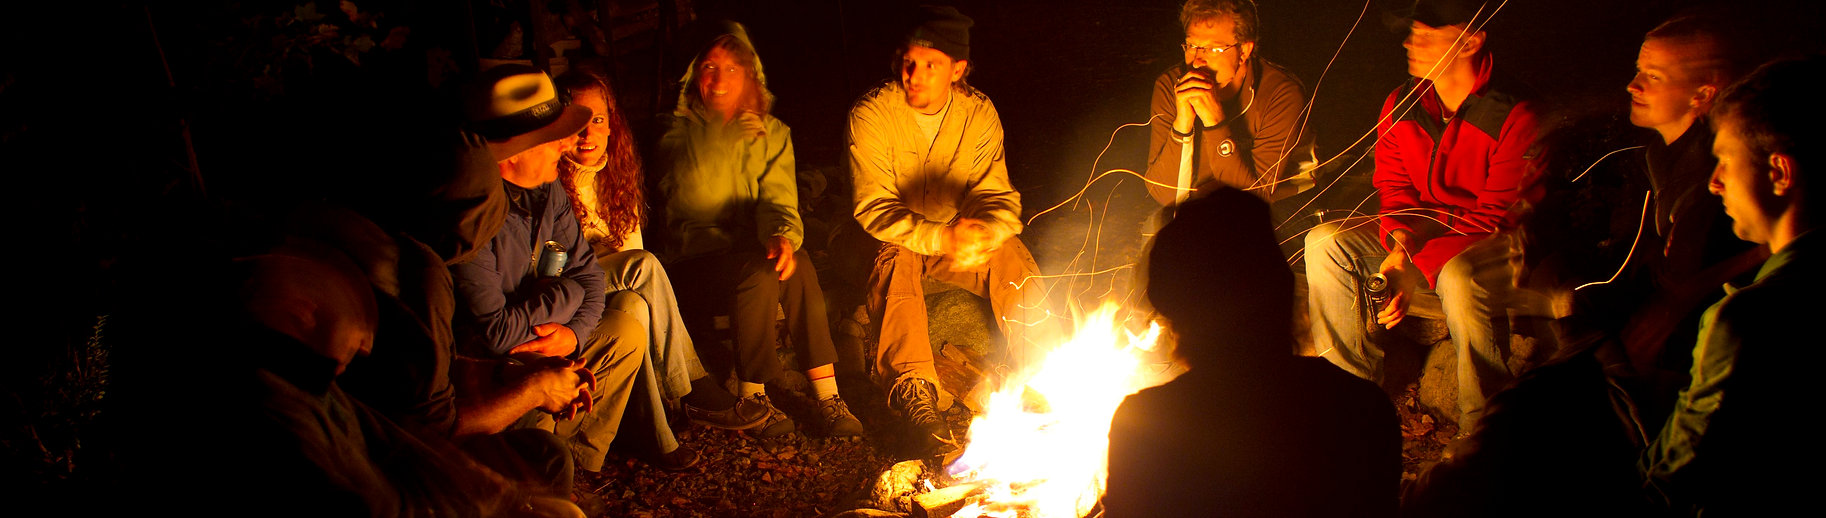 group of people sitting along campfire